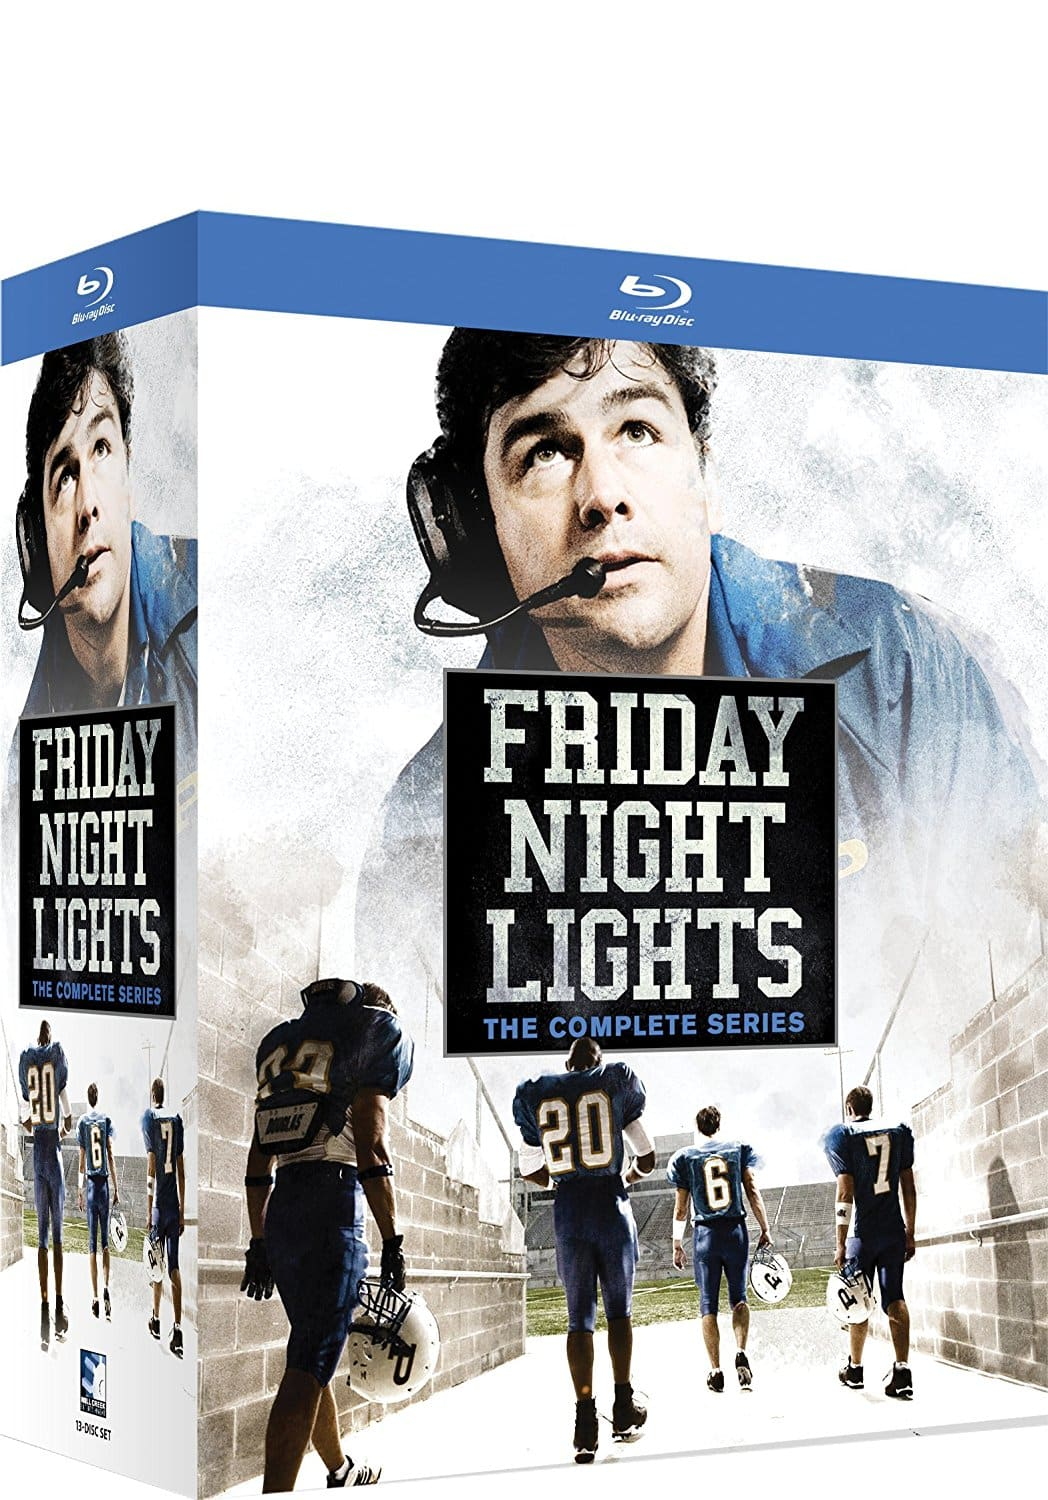 Friday Night Lights: The Complete Series (Blu-ray) $29 + Free Shipping